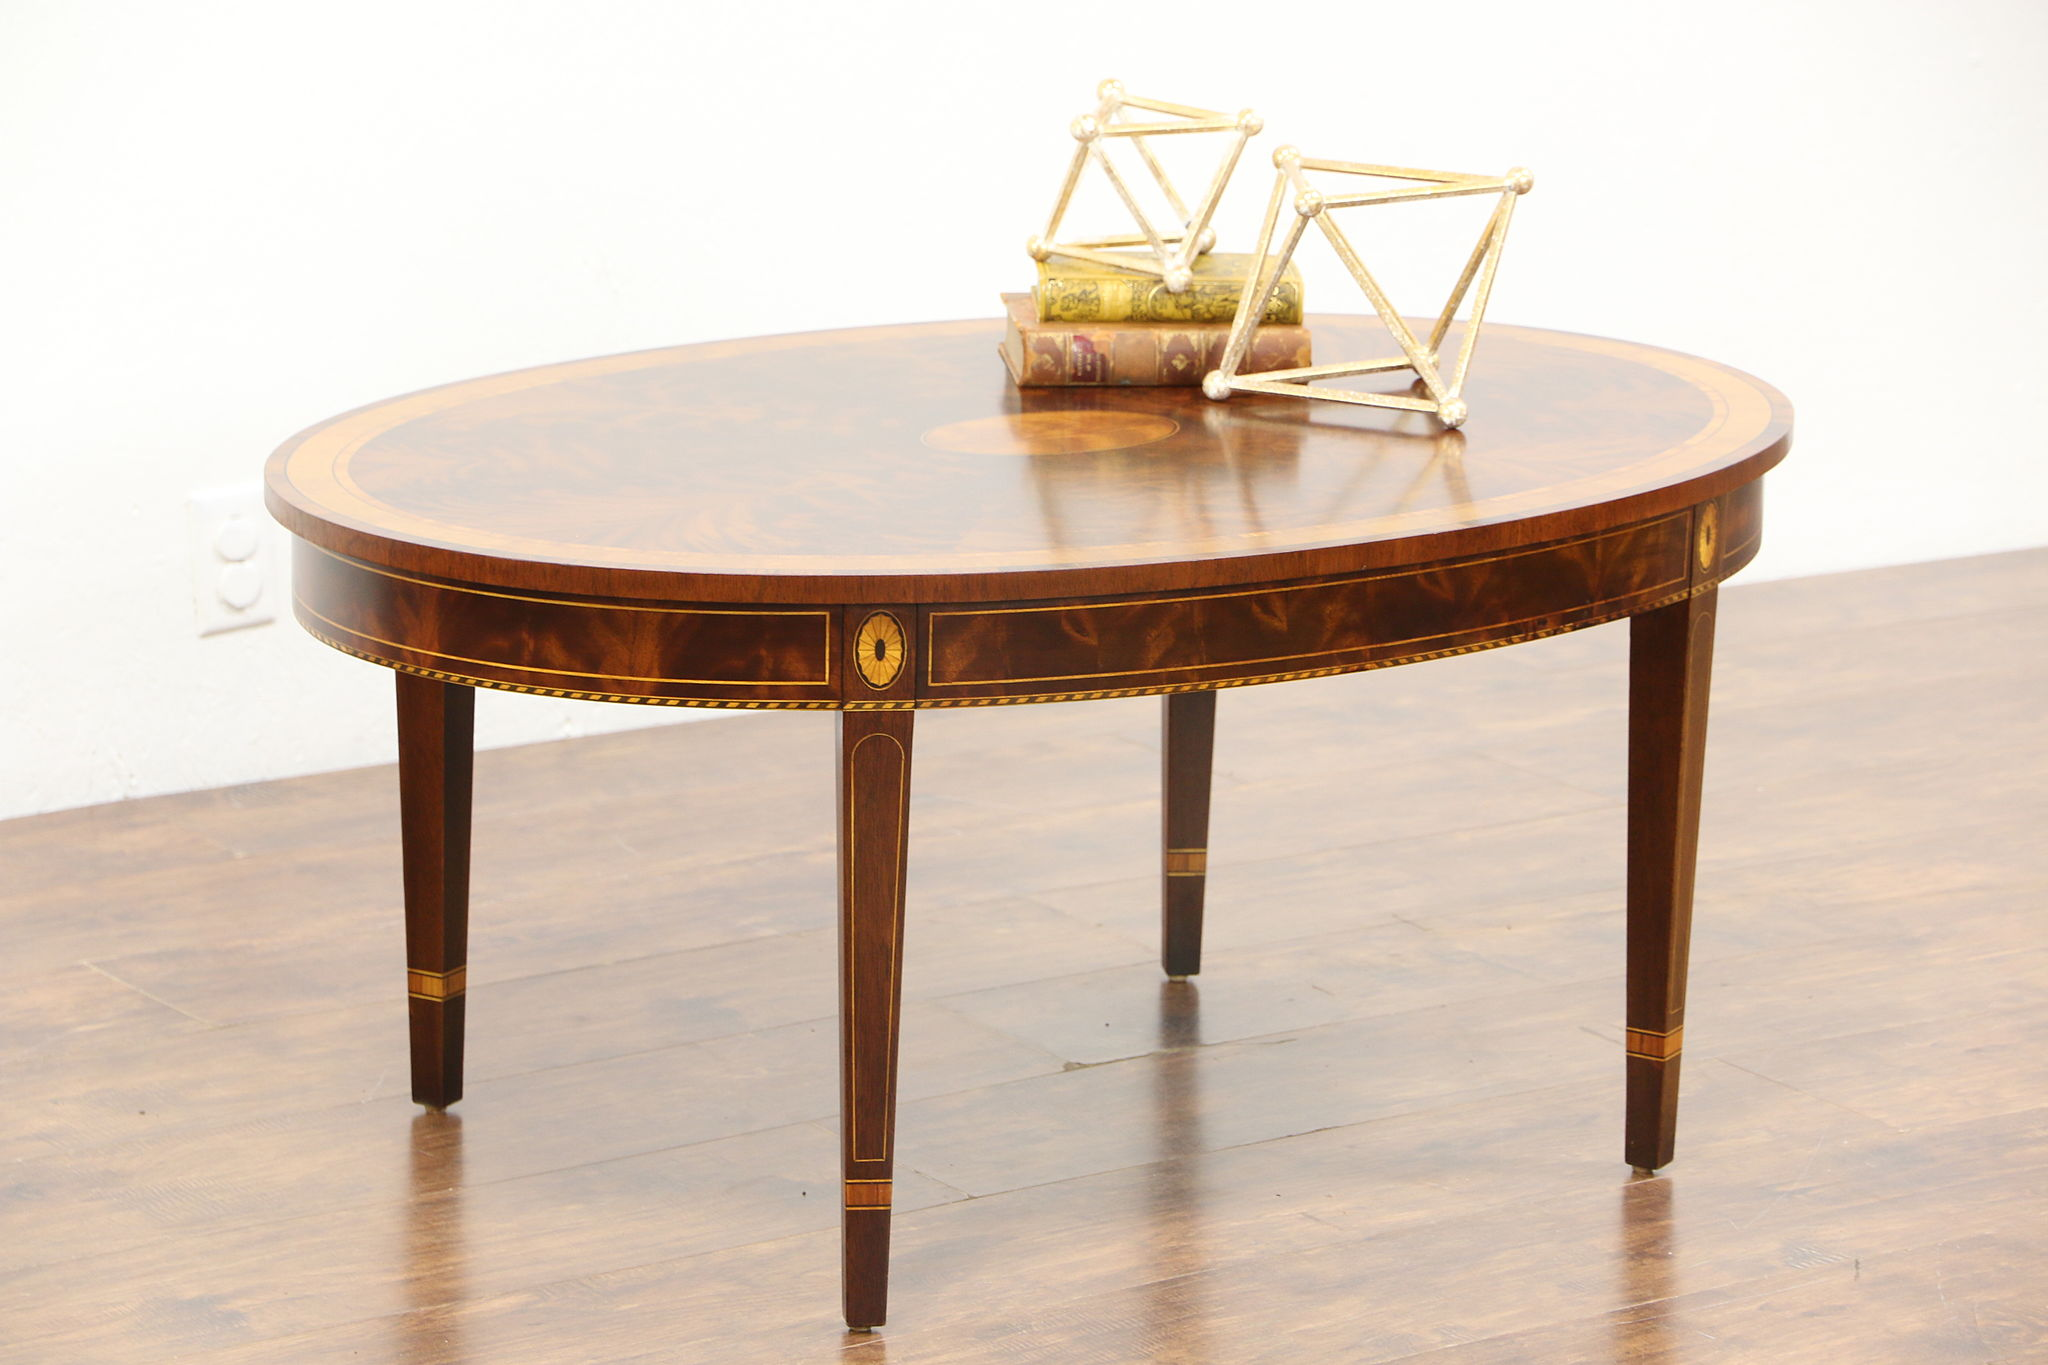 Sold Oval Vintage Mahogany Banded Sunburst Marquetry Coffee Table Signed Stickley Harp